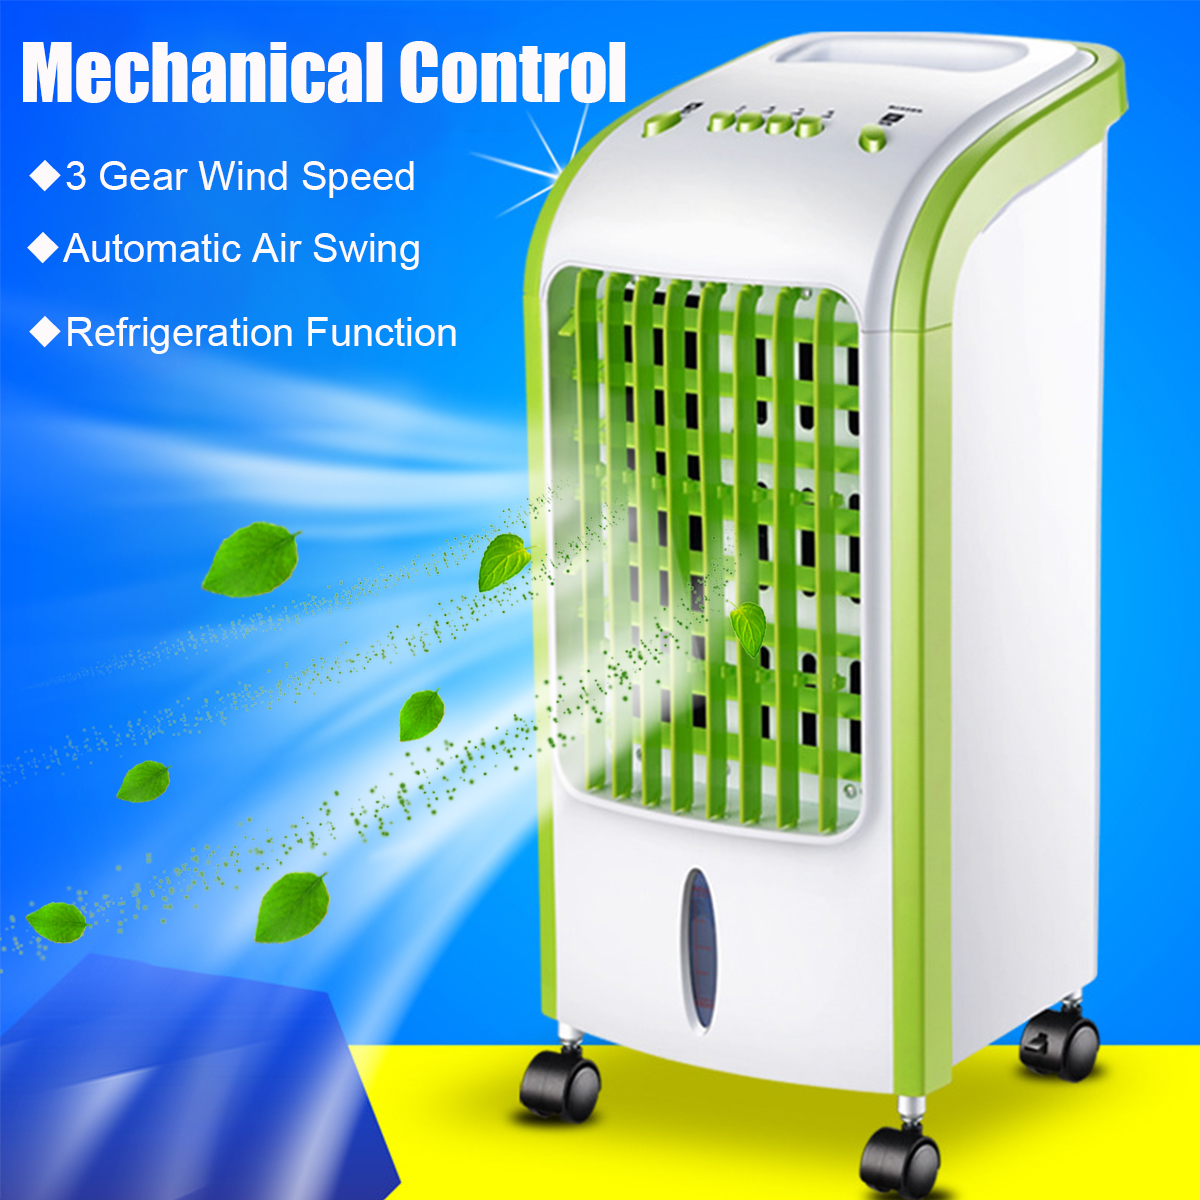 220V Portable Air Conditioner Fan Humidifier Cooler Water Cooling System Mechanical/Remote Control